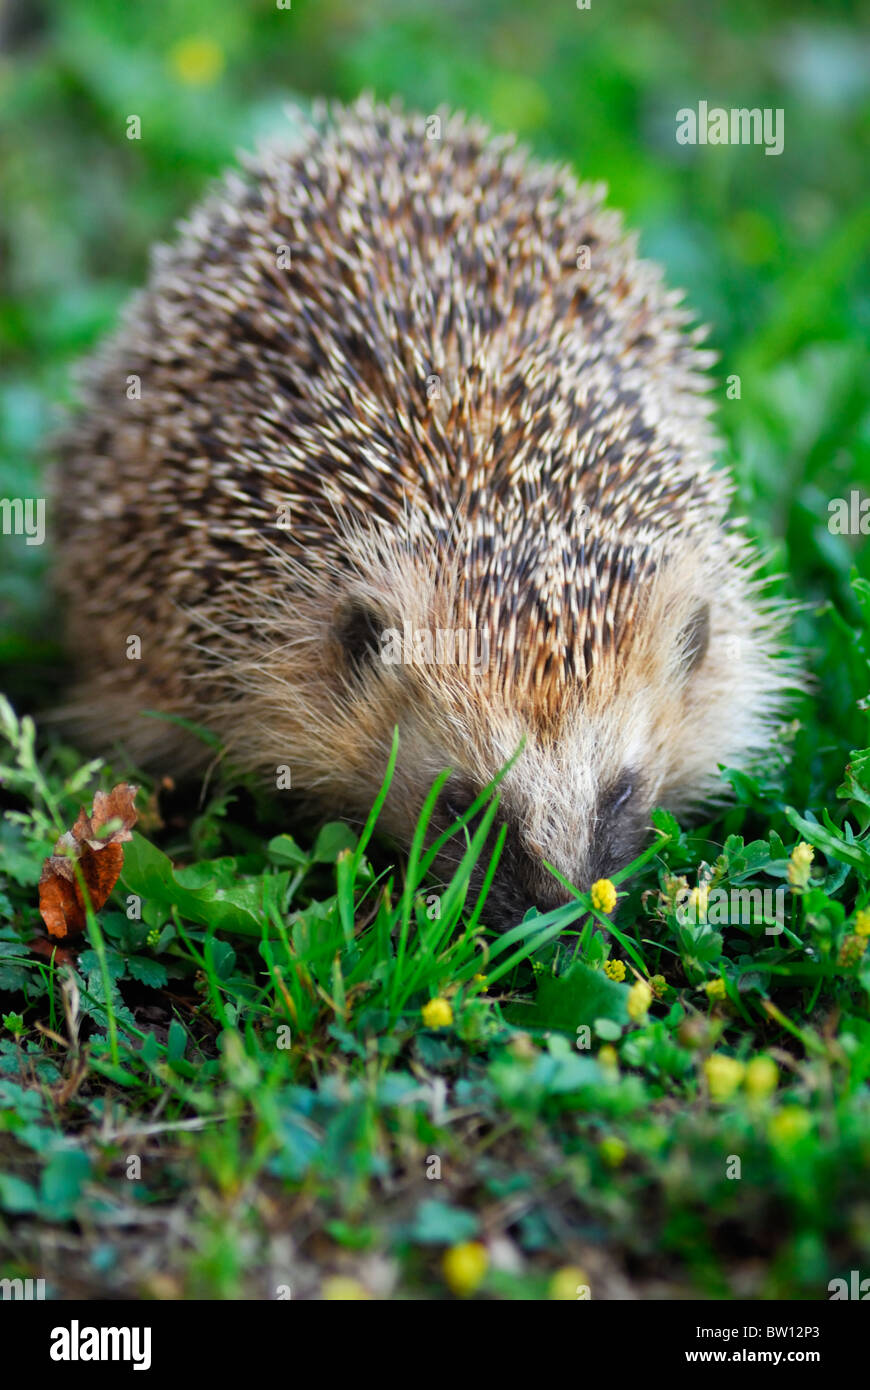 Close-up of Hedgehog (Erinaceus europaeus), Sweden - Stock Image